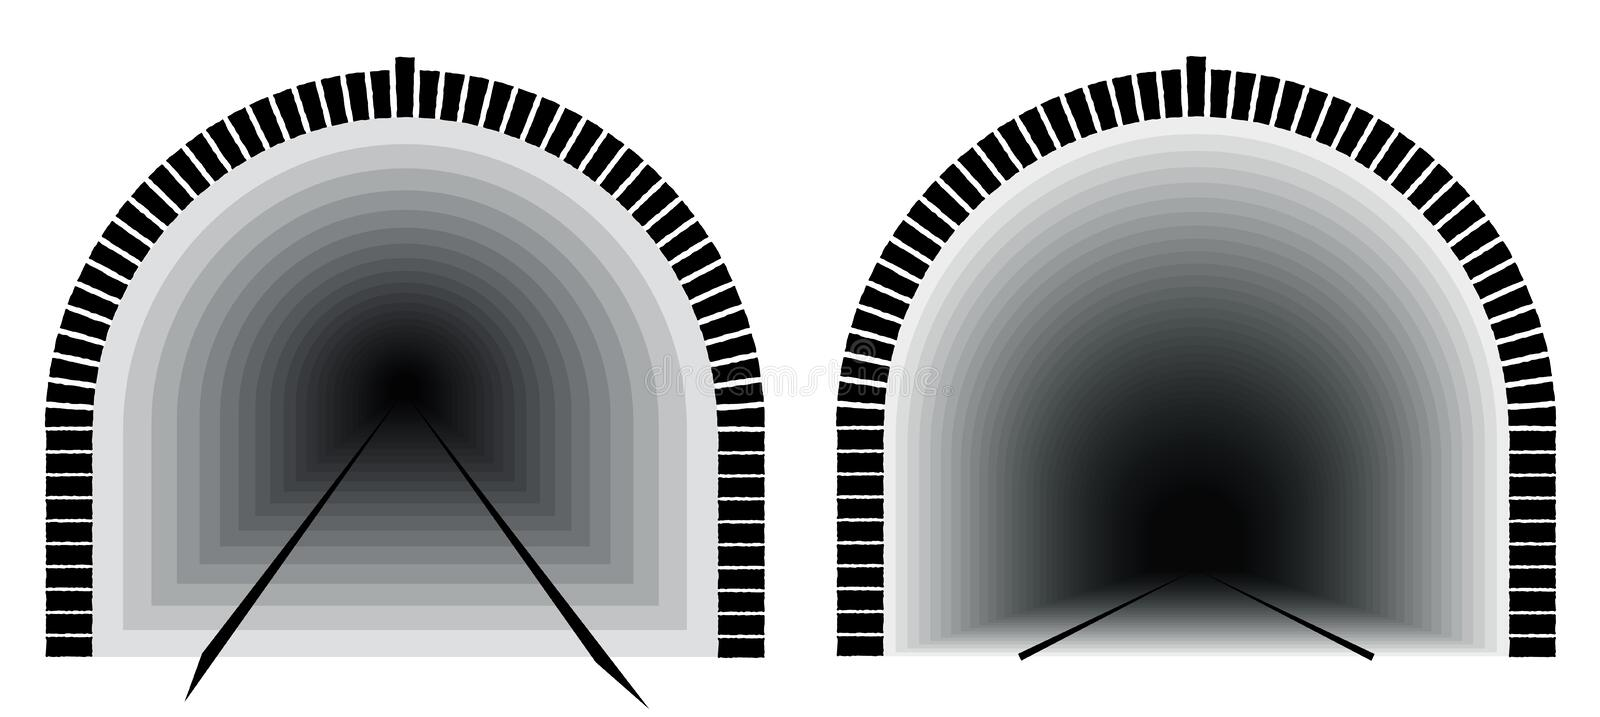 A long and deep railway tunnel. Way directly. The uncertainty lies ahead. royalty free illustration